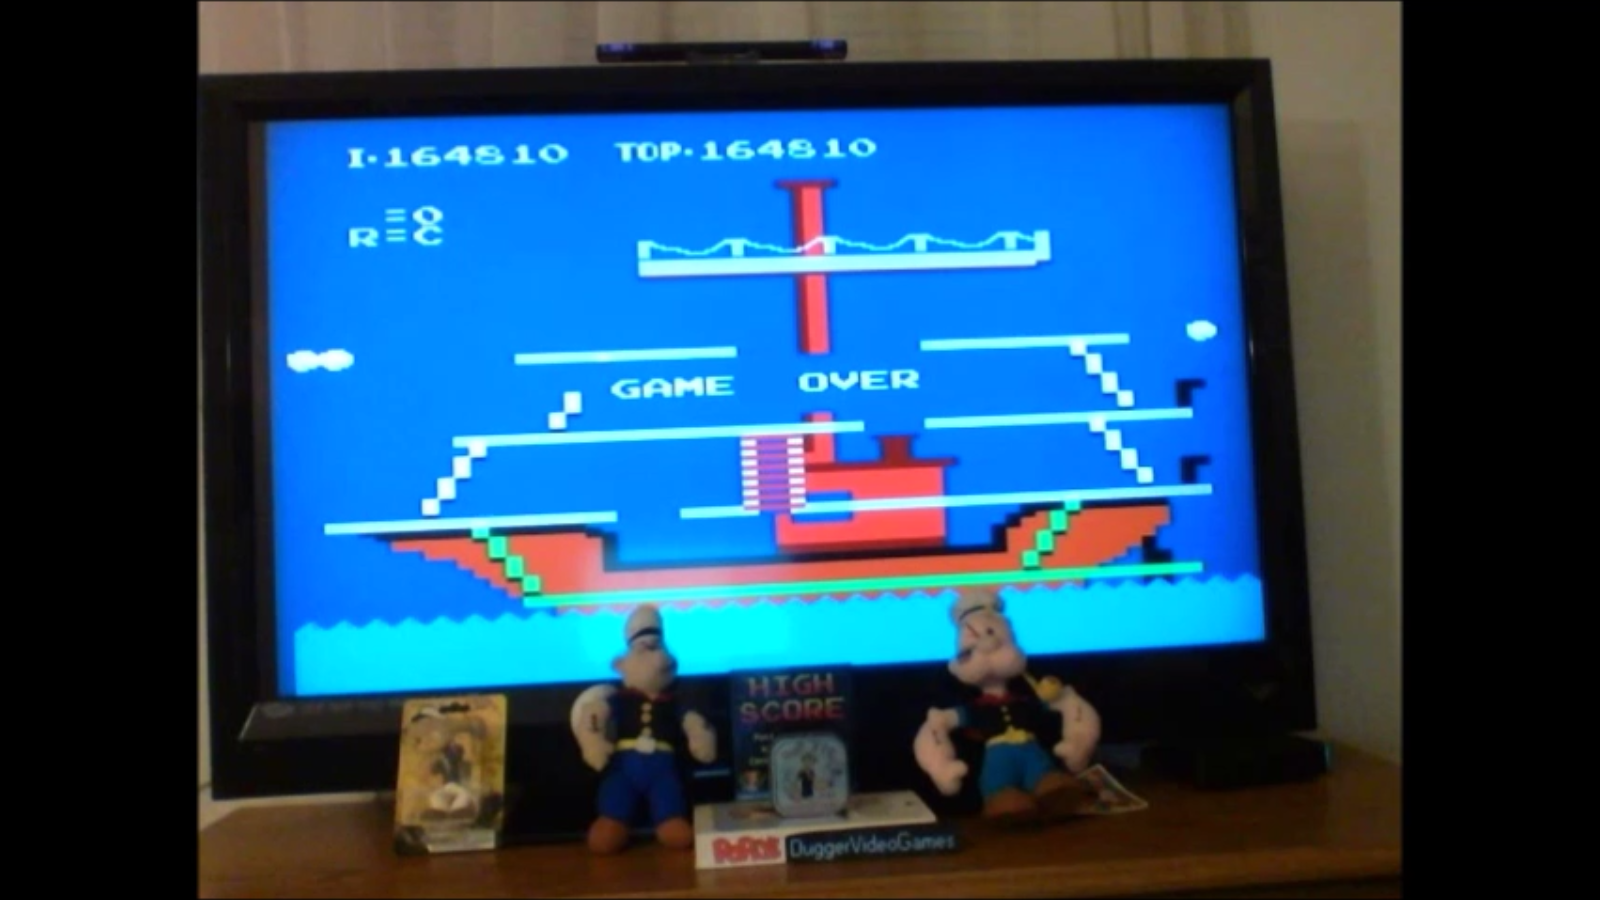 DuggerVideoGames: Popeye (NES/Famicom Emulated) 164,810 points on 2016-12-29 23:02:07